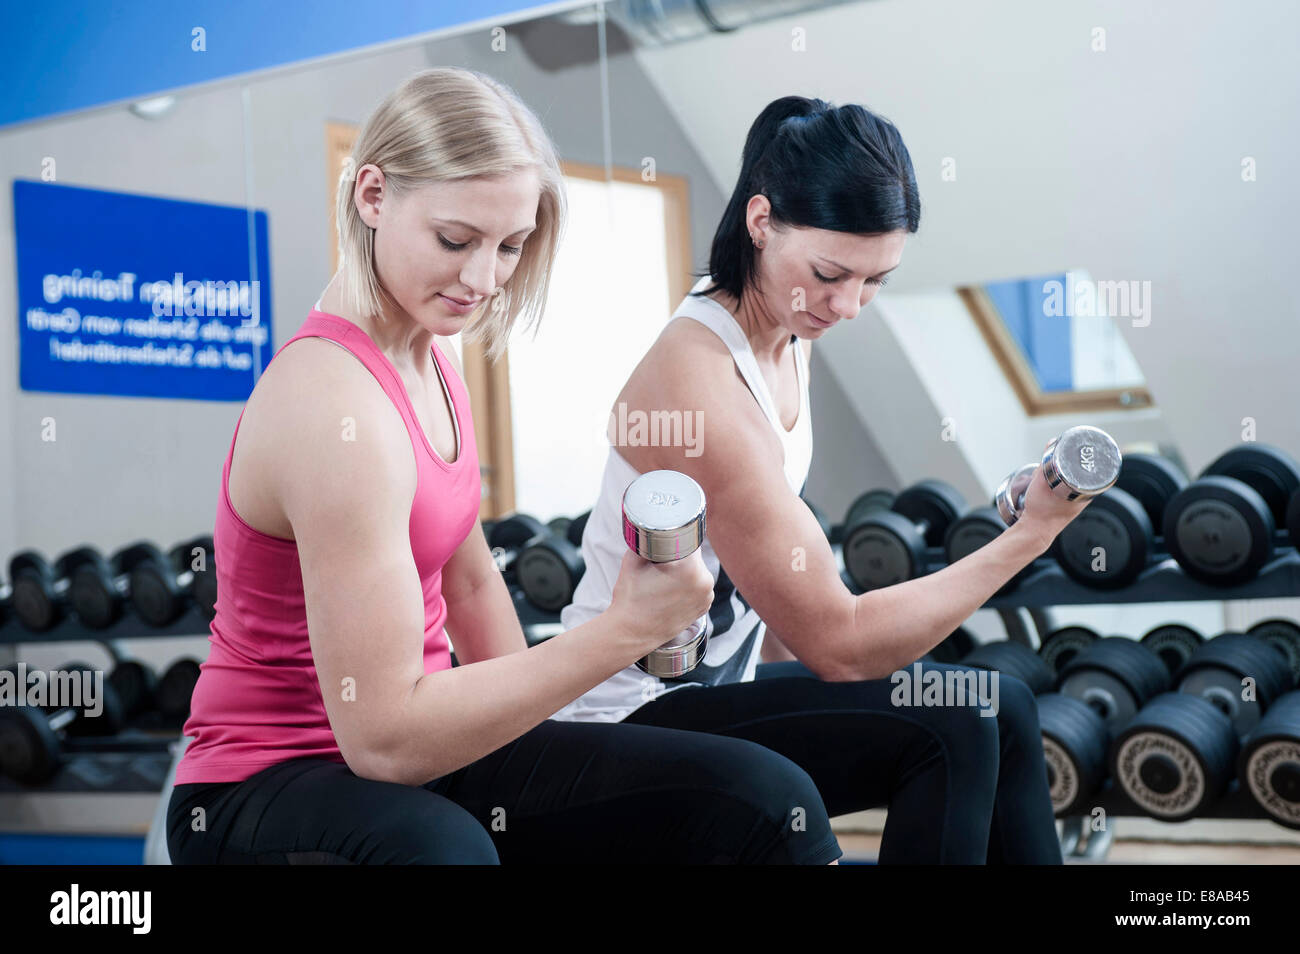 Two women in gym doing weight training - Stock Image